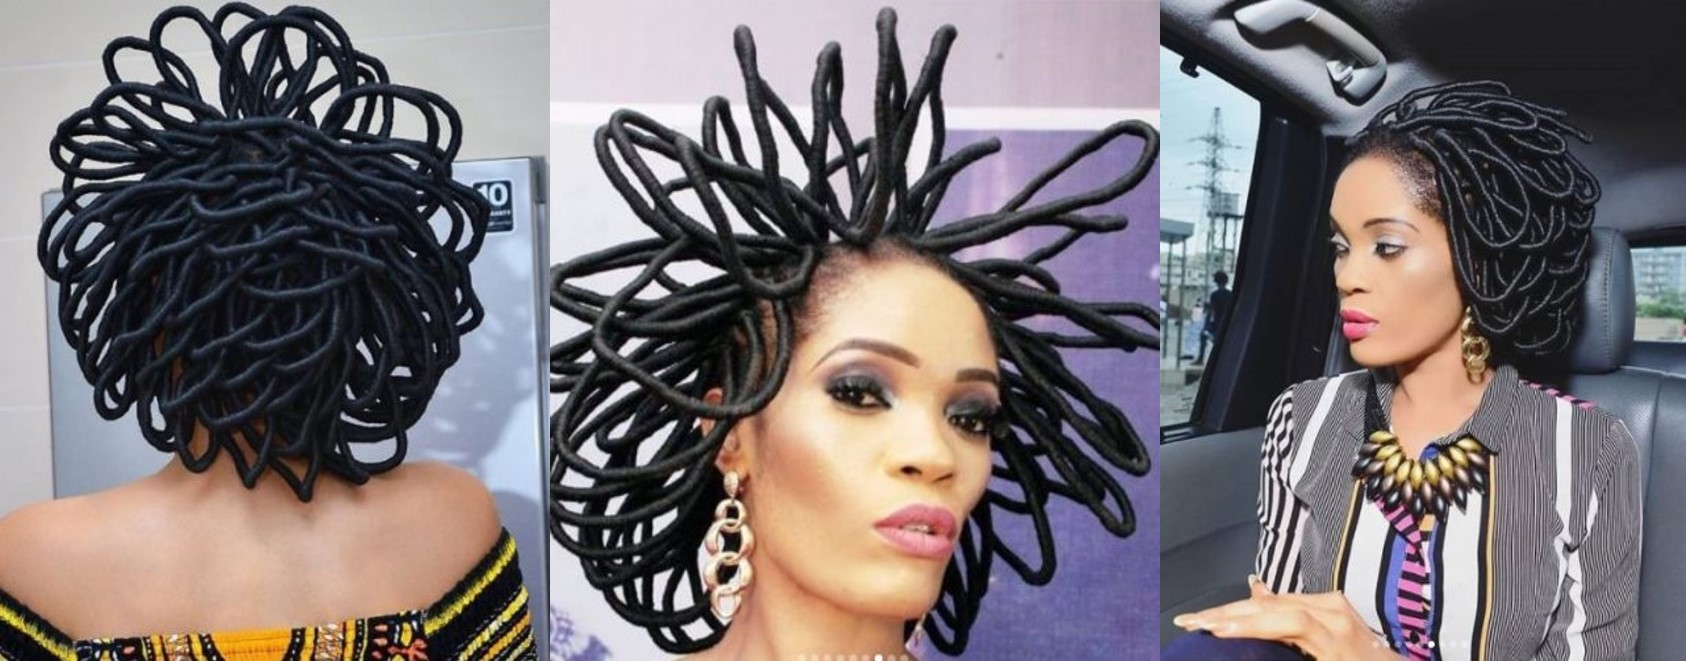 Check out more Photos of Chika Lann and her 'N40 Million' Hair